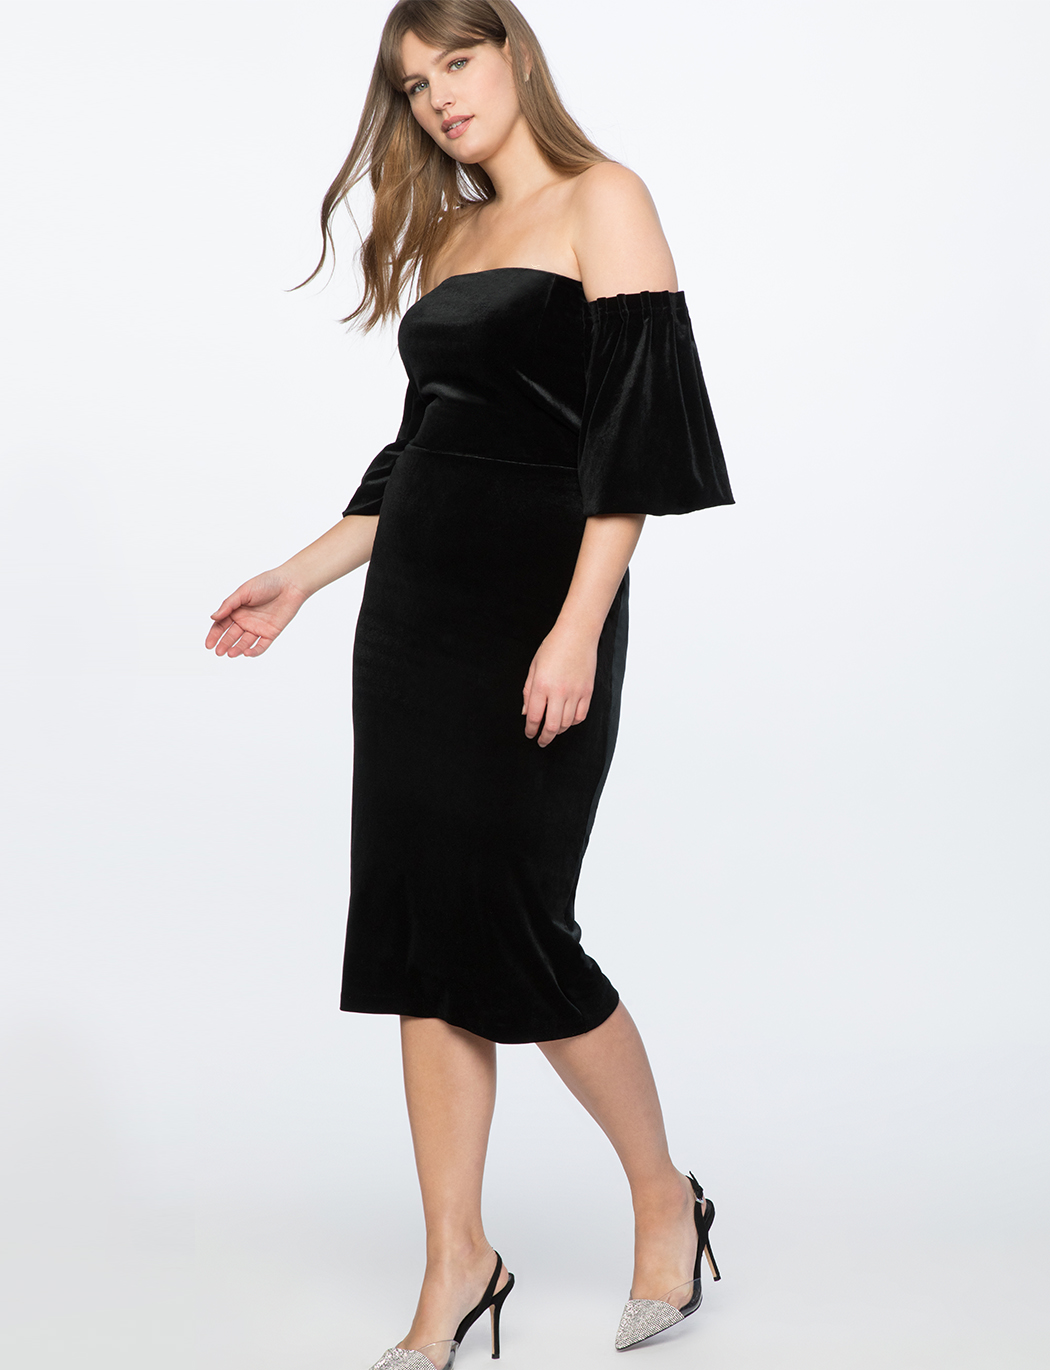 Strapless Velvet Dress with Full Sleeves 16